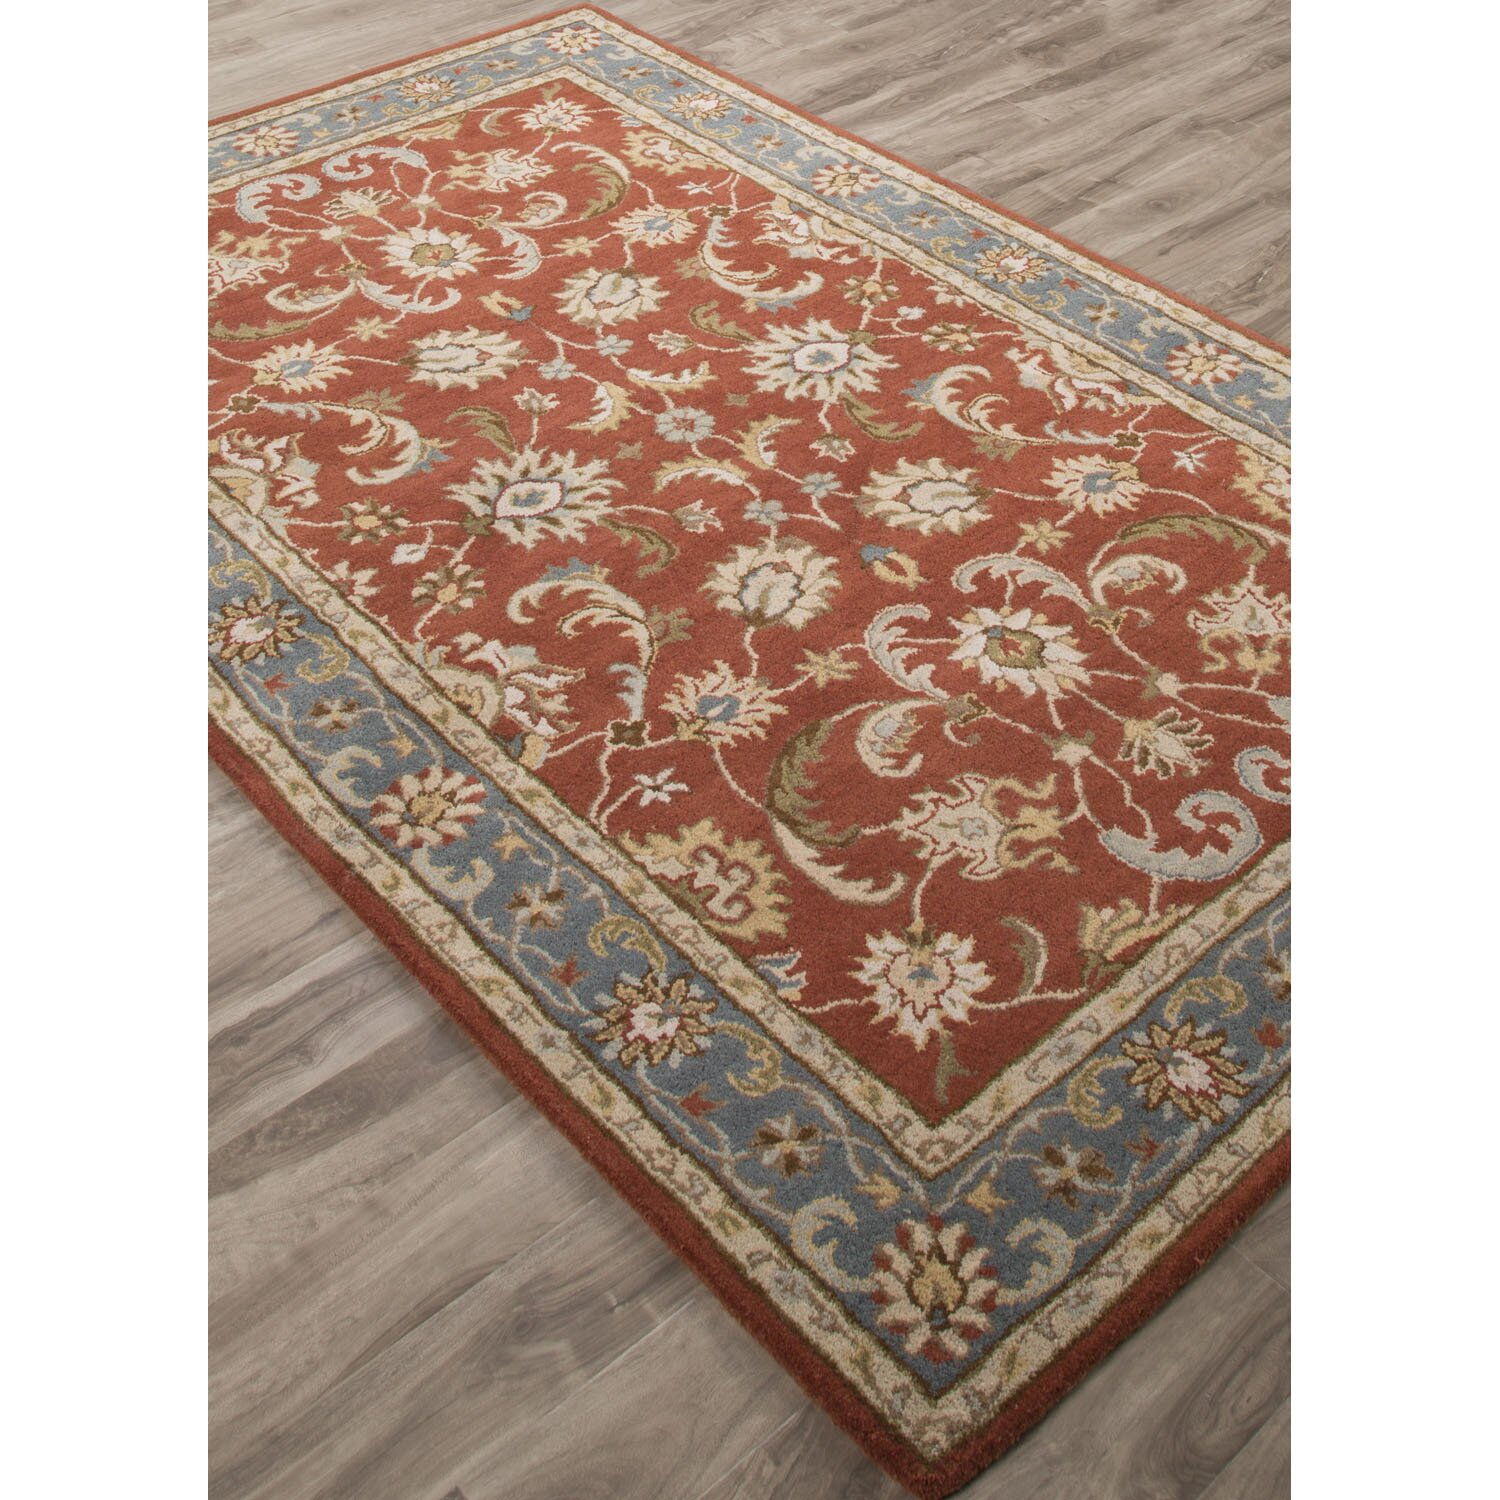 Jaipurliving poeme hand tufted red blue area rug wayfair for Red and blue area rug